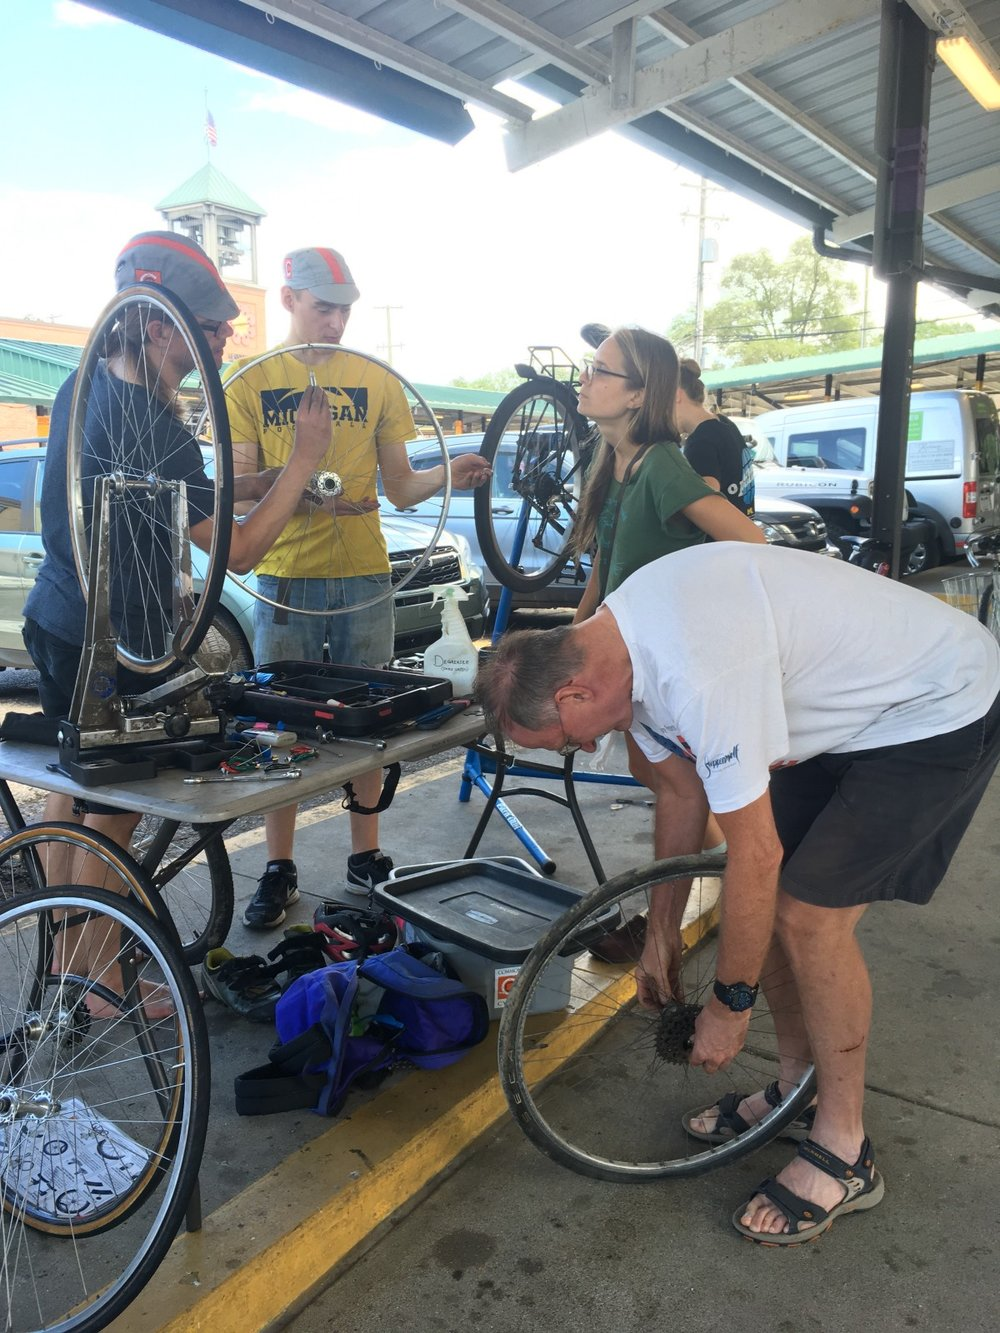 Andrew works with Common Cycle board member Ian, apprentice Simone, and a patron at Common Cycle's typical mobile repair stand in Kerrytown.